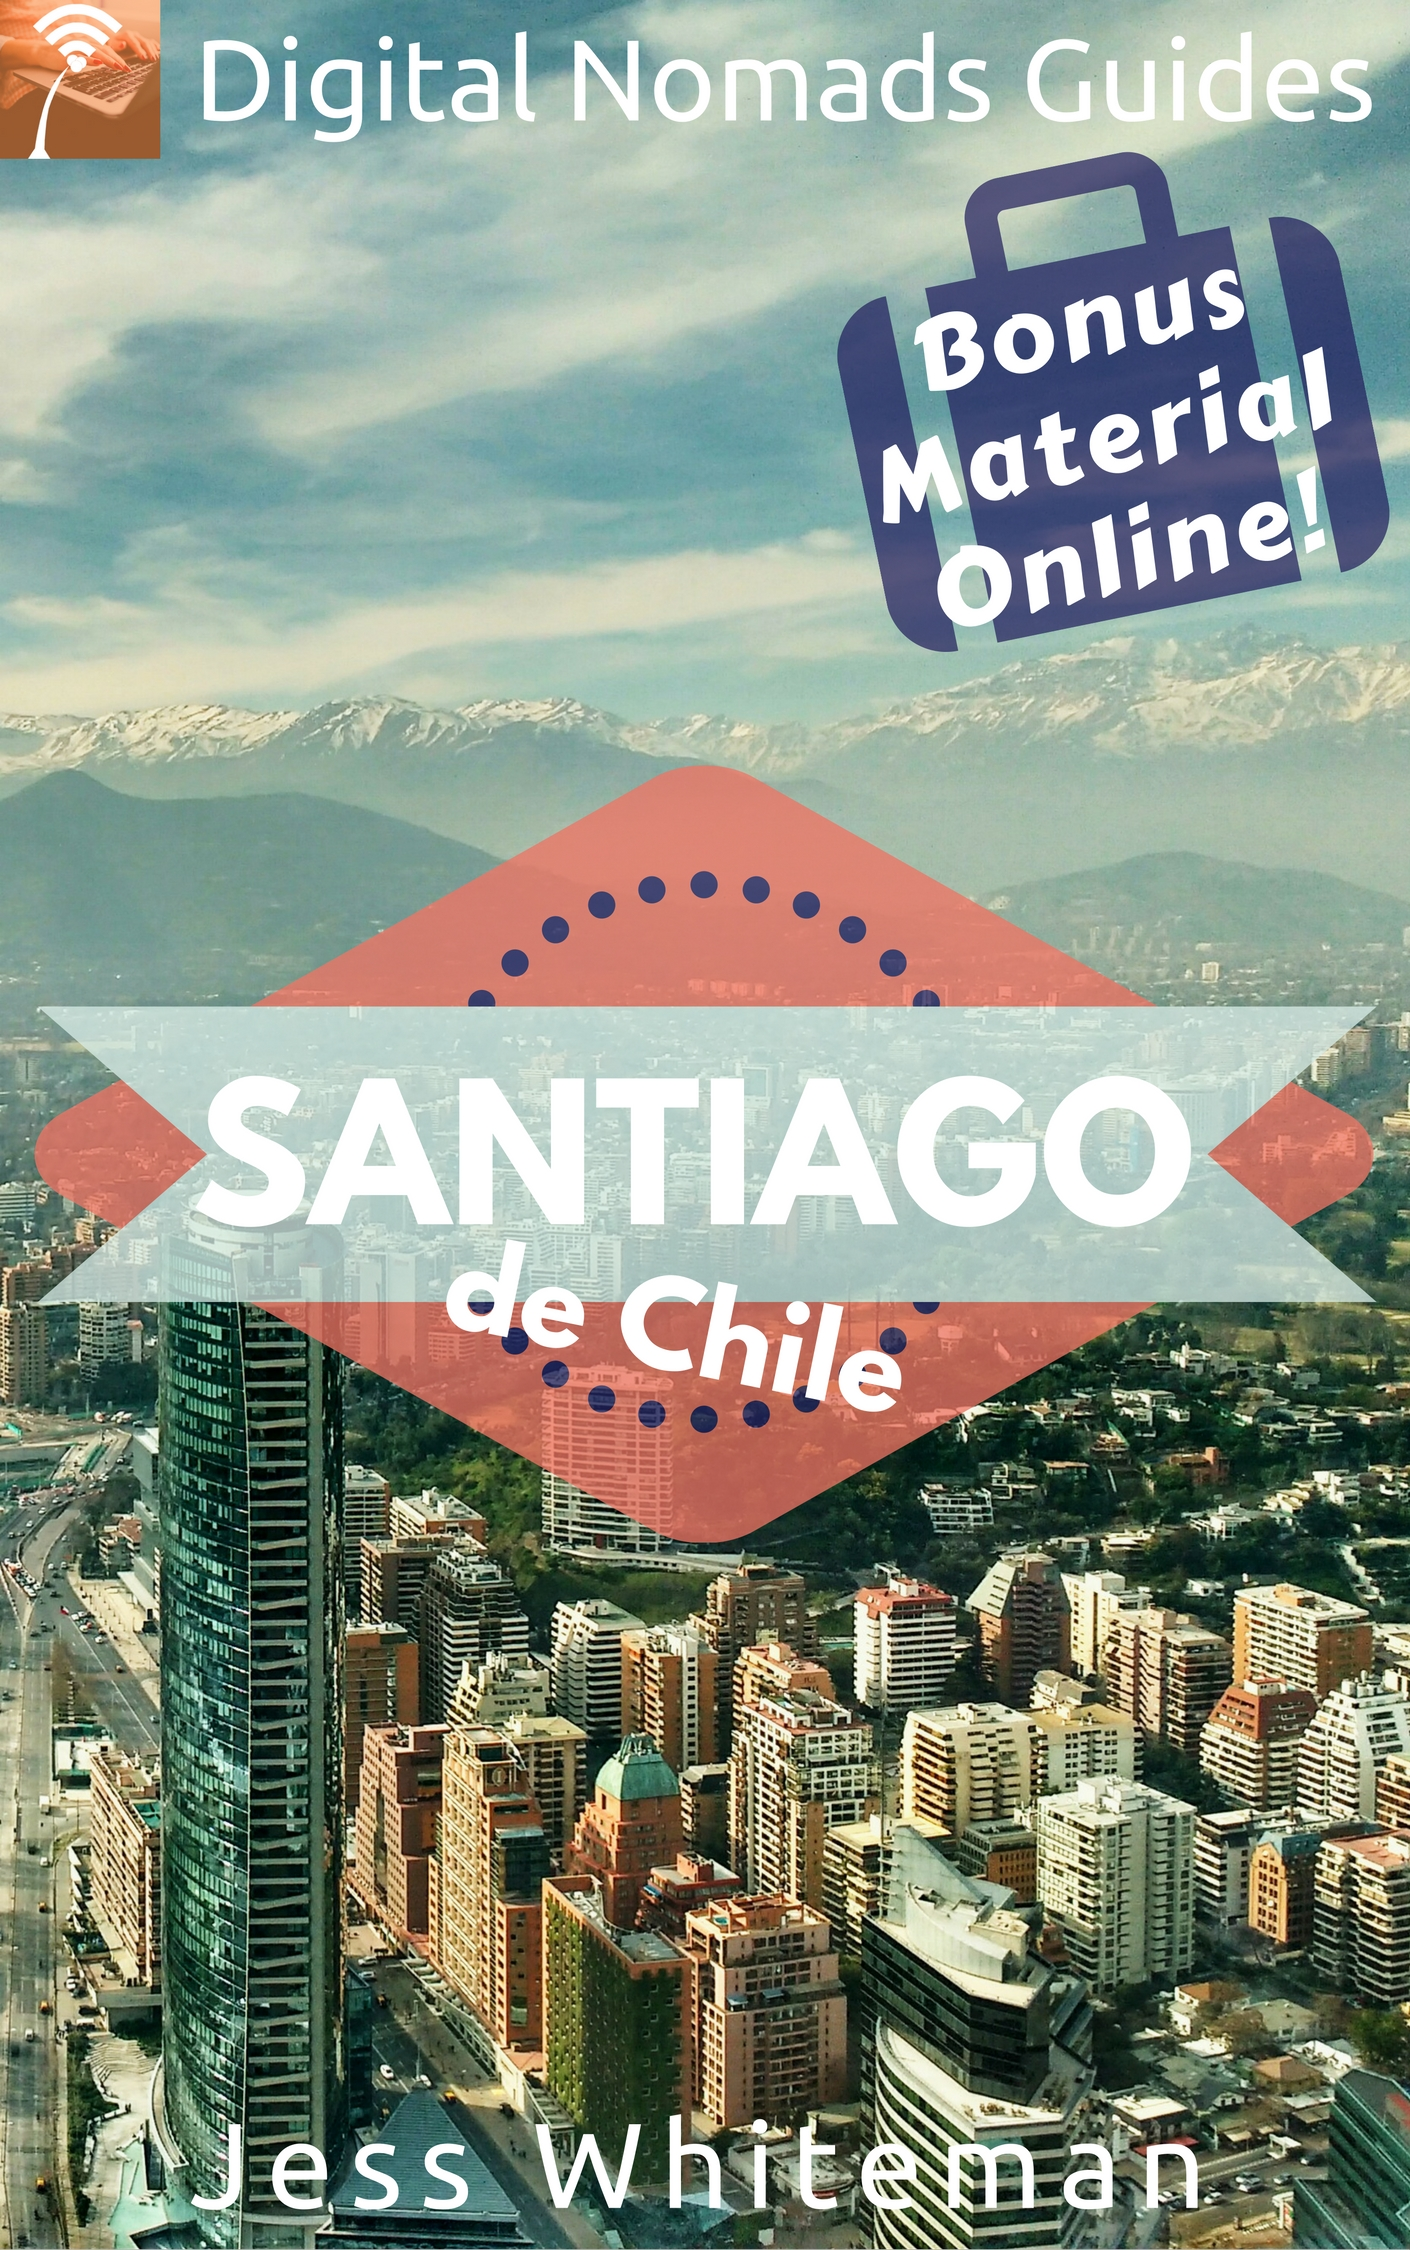 santiago chile digital nomads guides